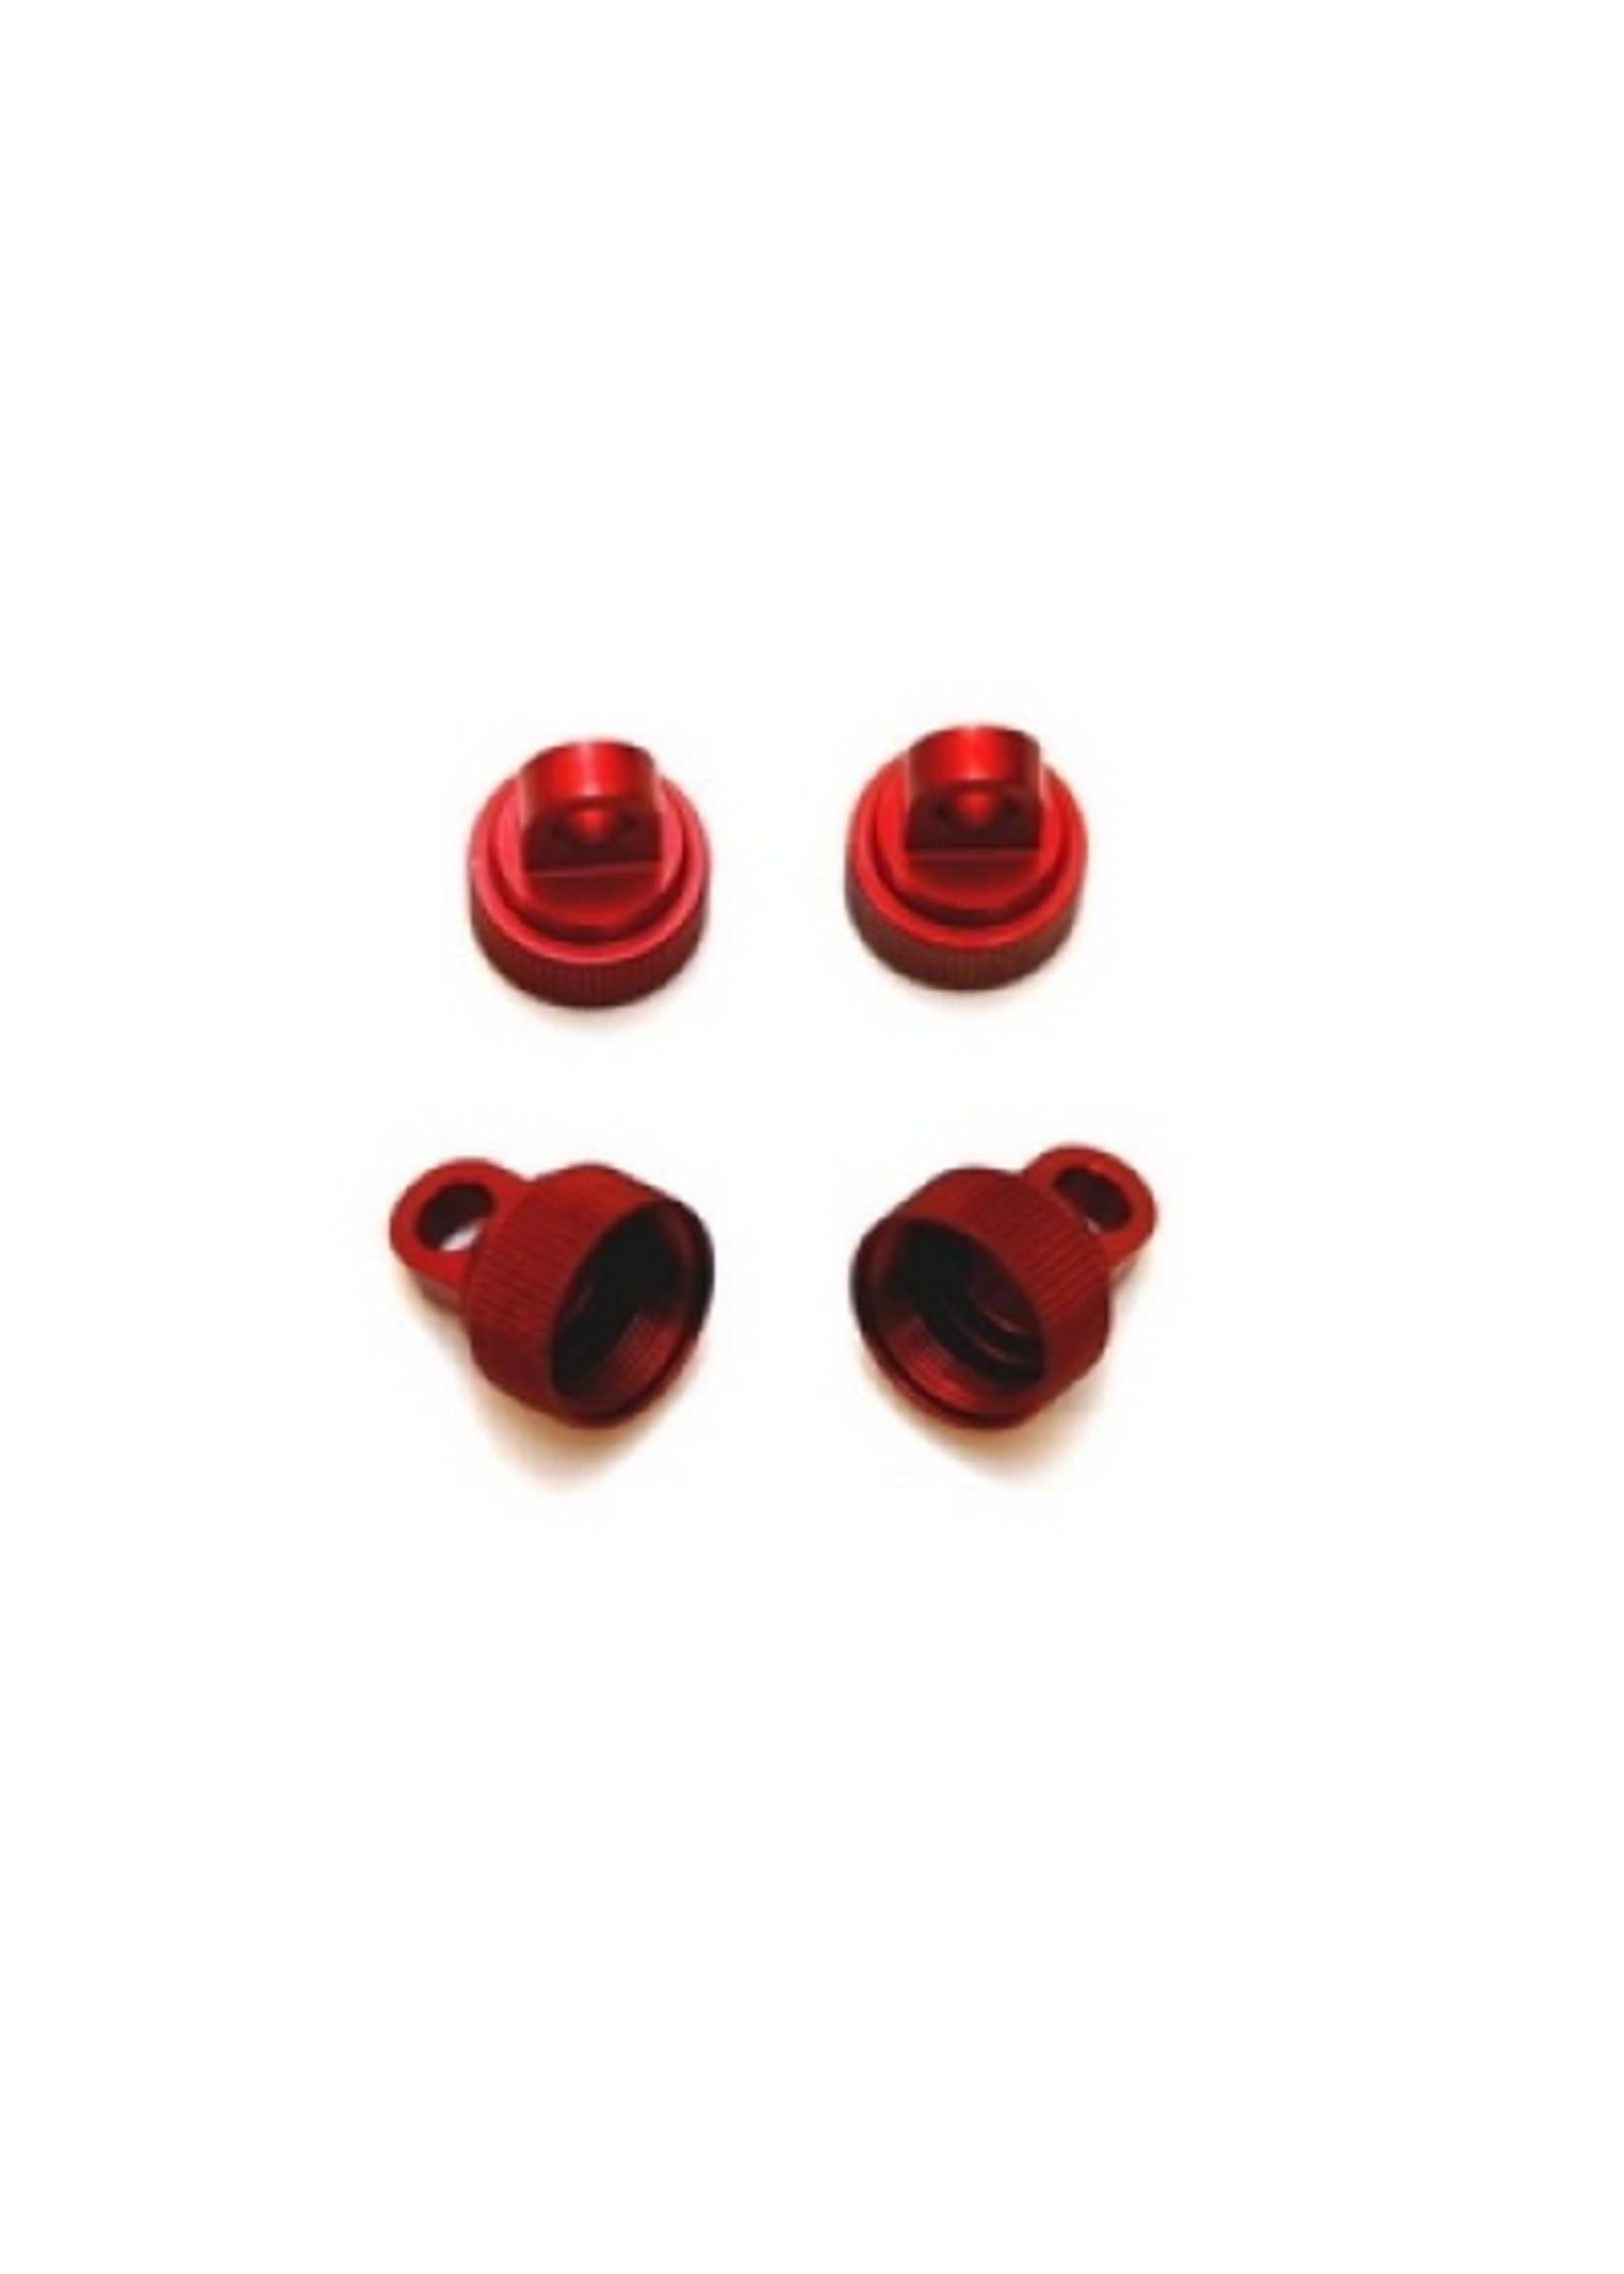 ST Racing Concepts SPTST3767R ST Racing Concepts CNC Machined Aluminum Upper Shock Caps-Traxxas 4pc (Red)